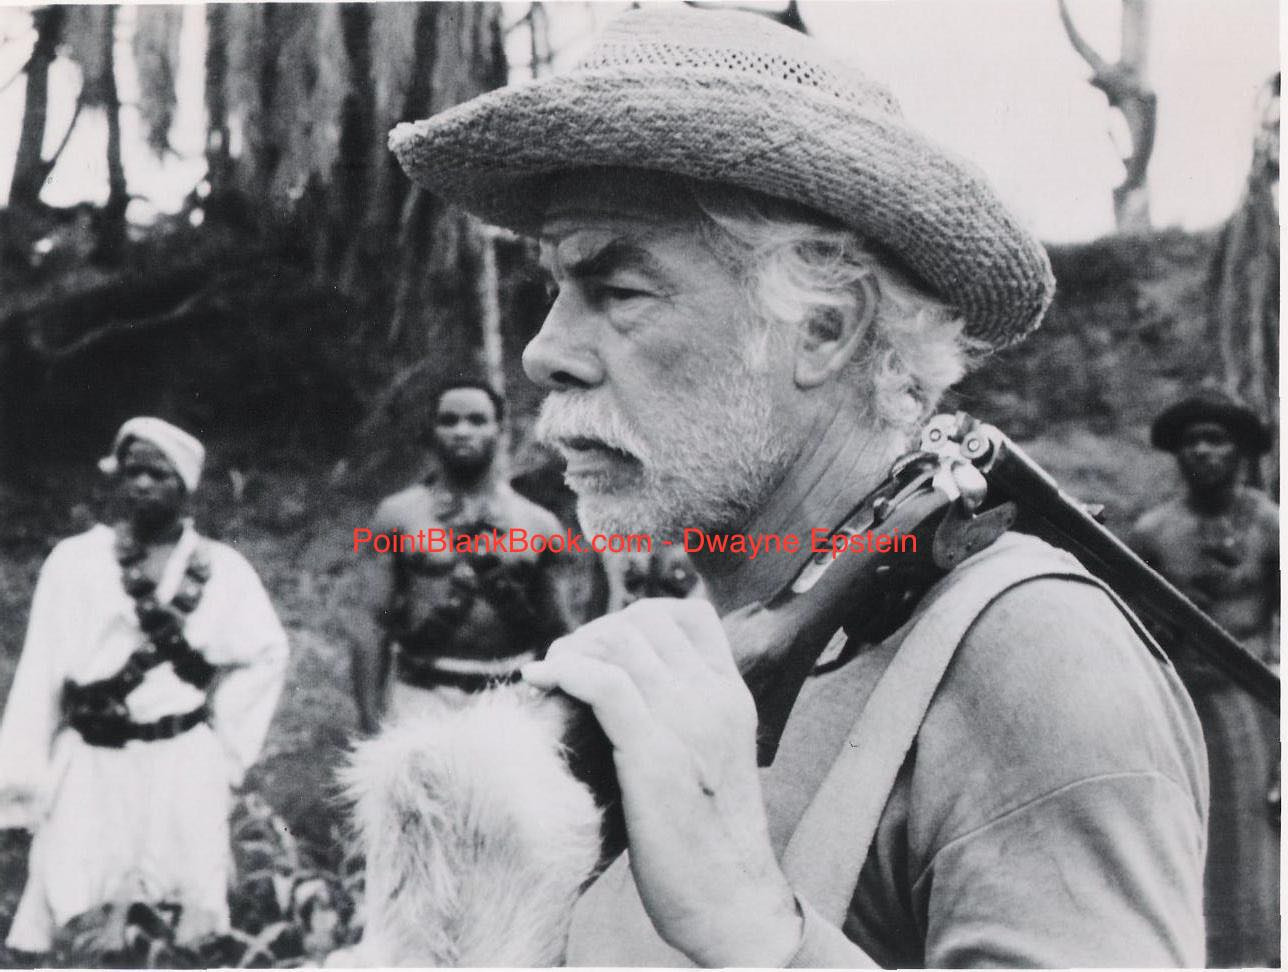 Lee Marvin with loaded elephant gun at the read, set to do battle with man or beast.